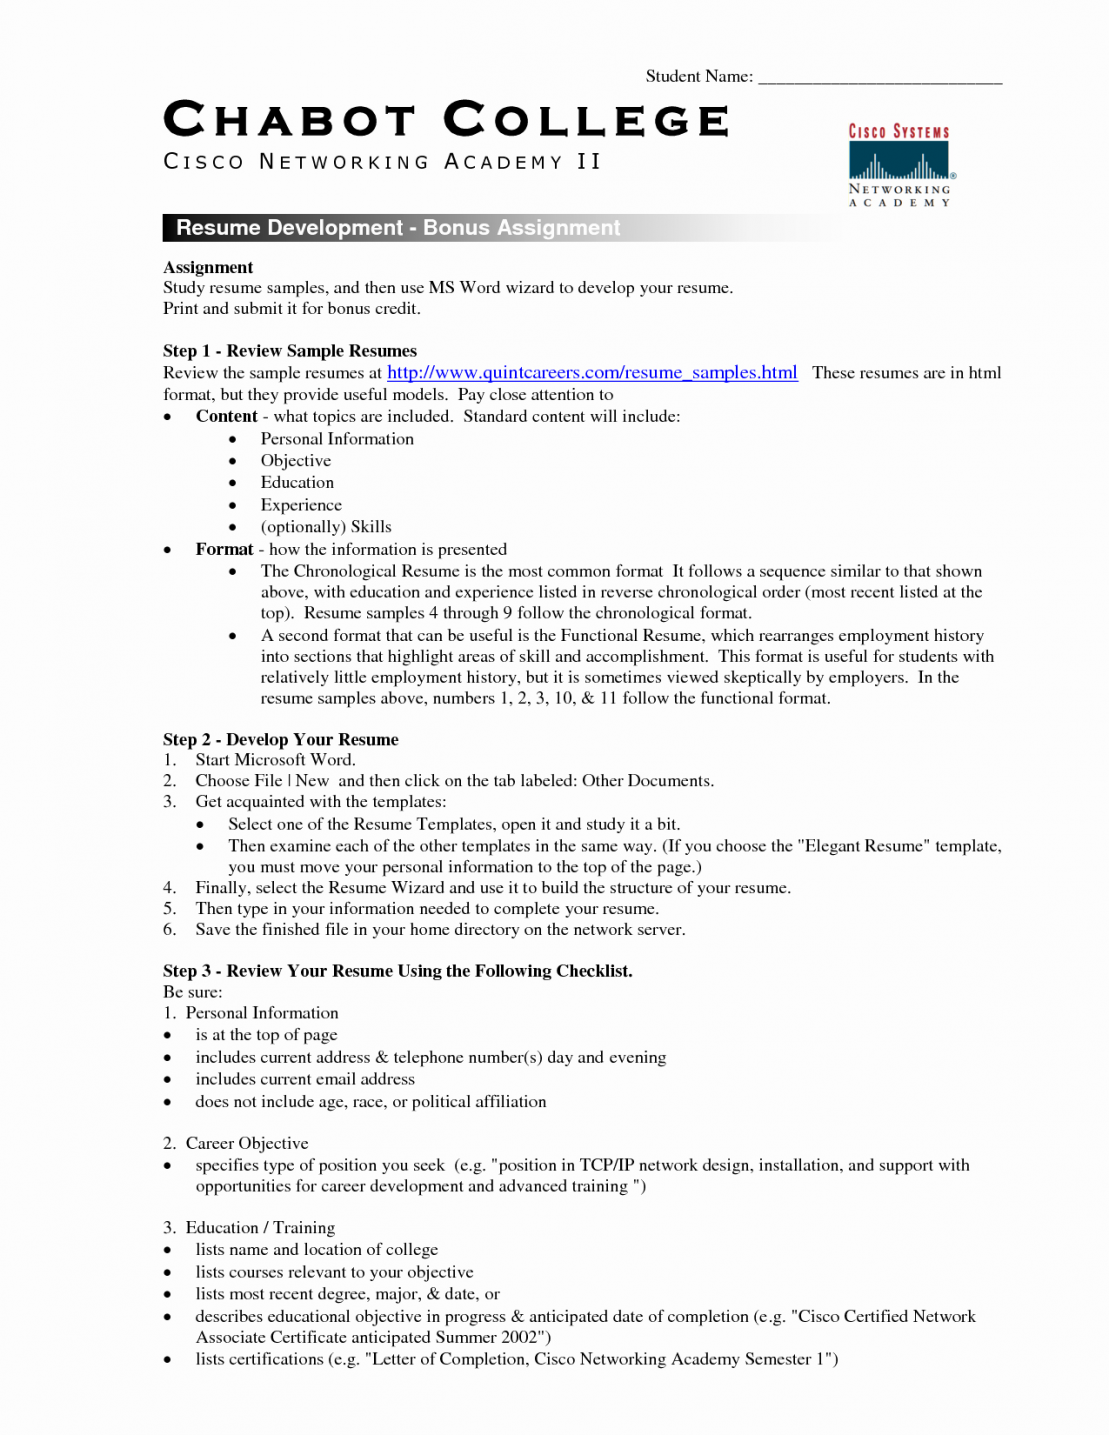 Free Student Resume Template Microsoft Word